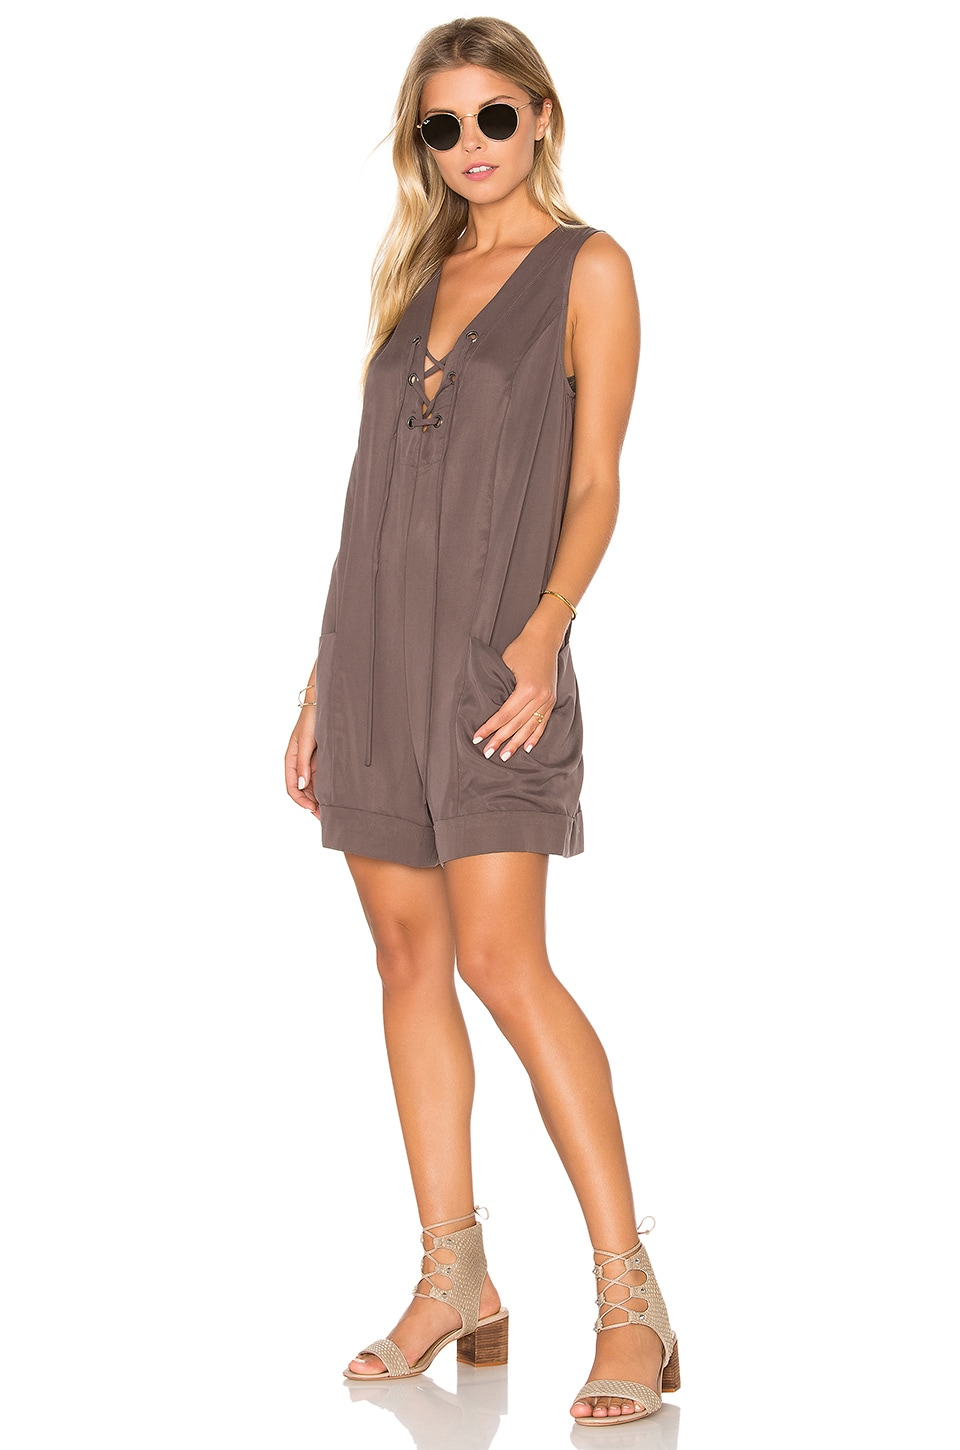 BCBGeneration Sleeveless Romper in Coffee Bean